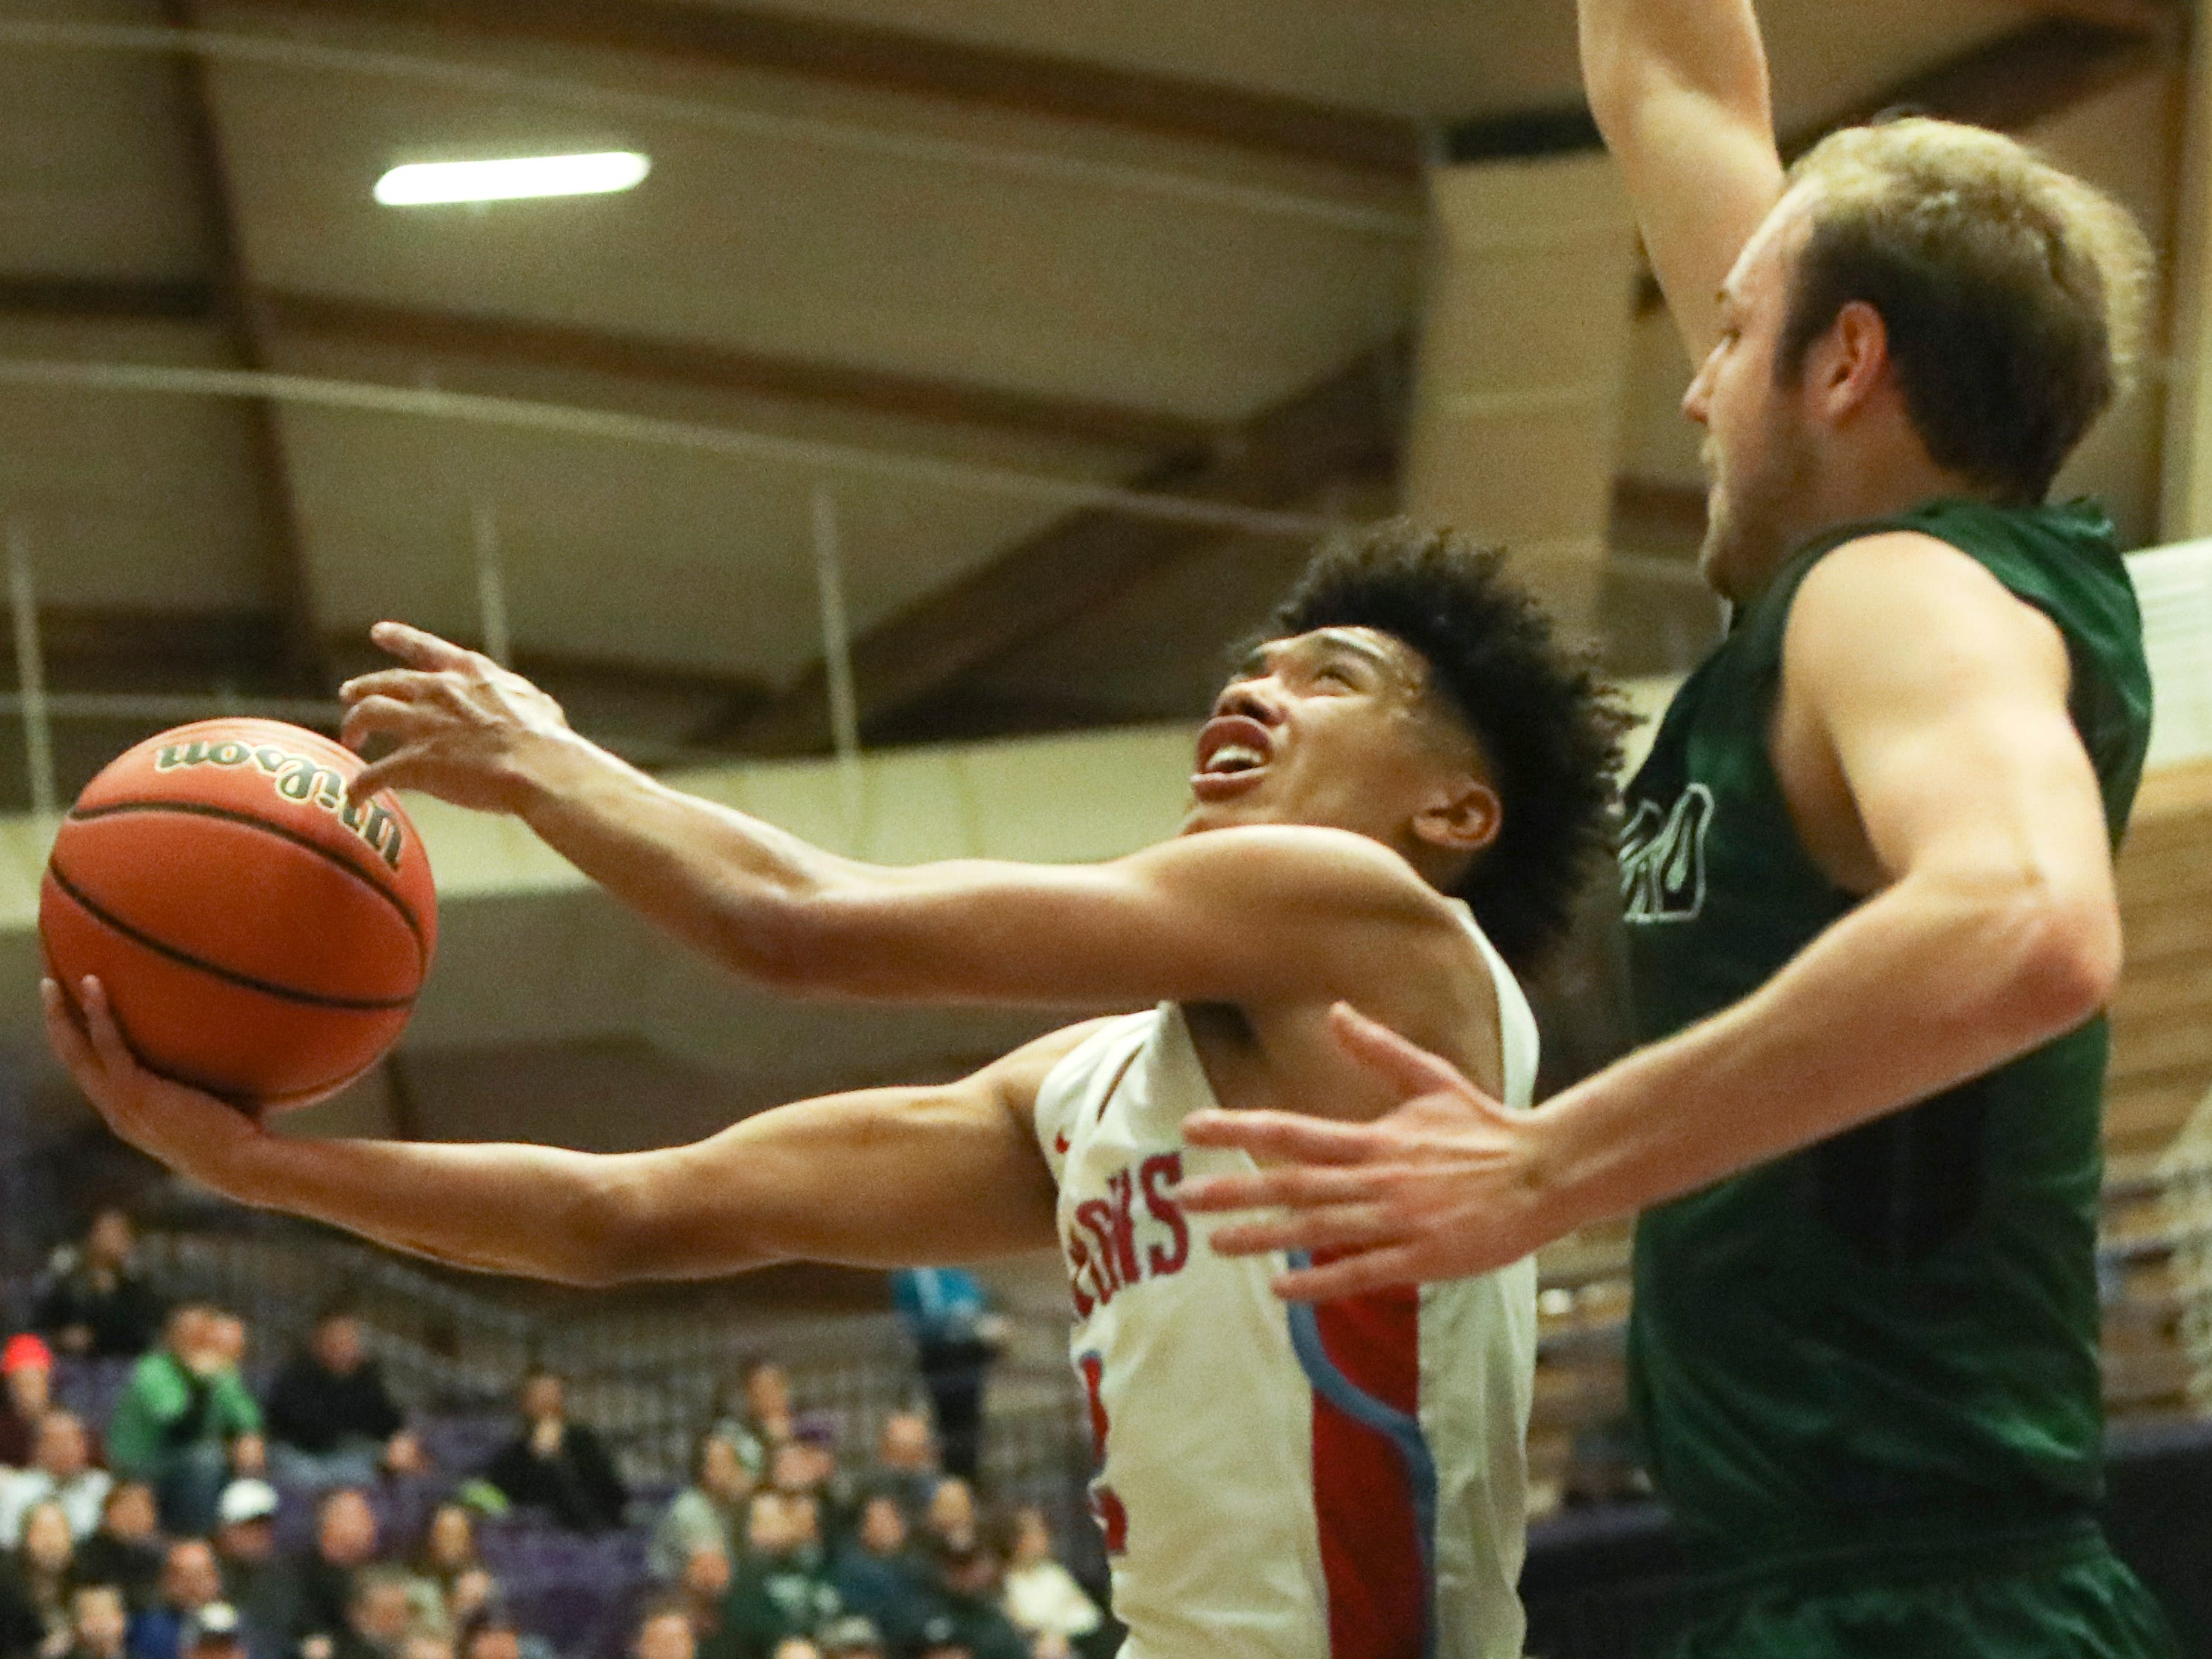 during the OSAA 6A boys basketball state tournament quarterfinal on Wednesday, March 6 at Chiles Center.